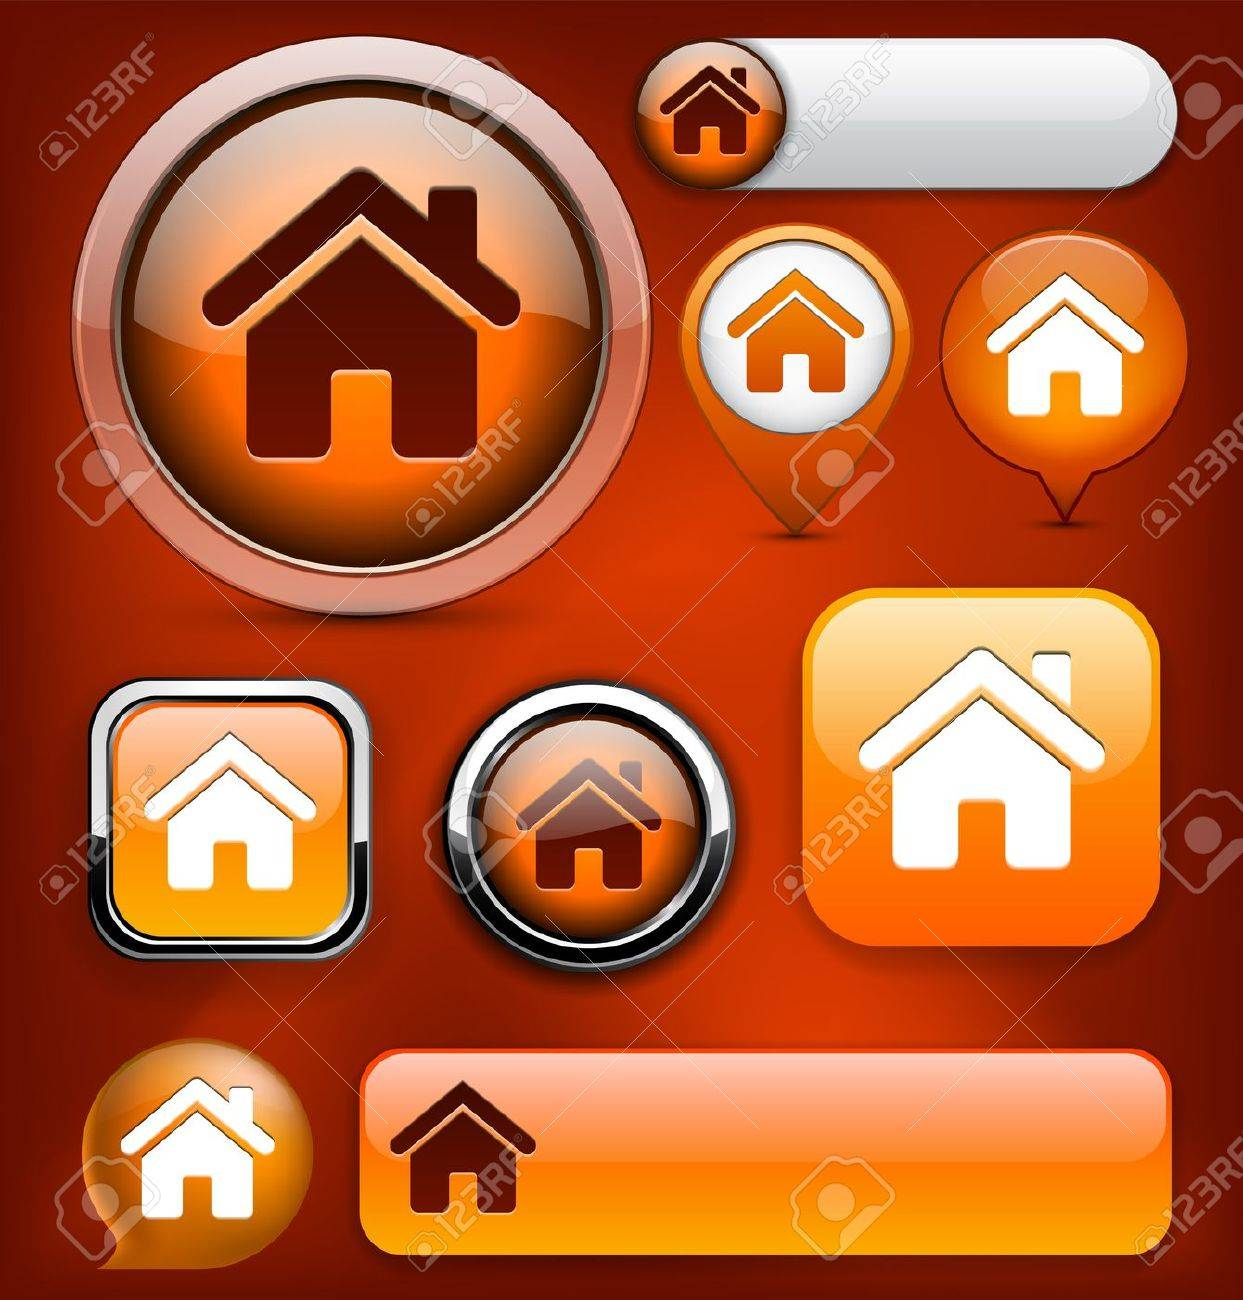 Home orange design elements for website or app. Vector eps10. Stock Vector - 12856673